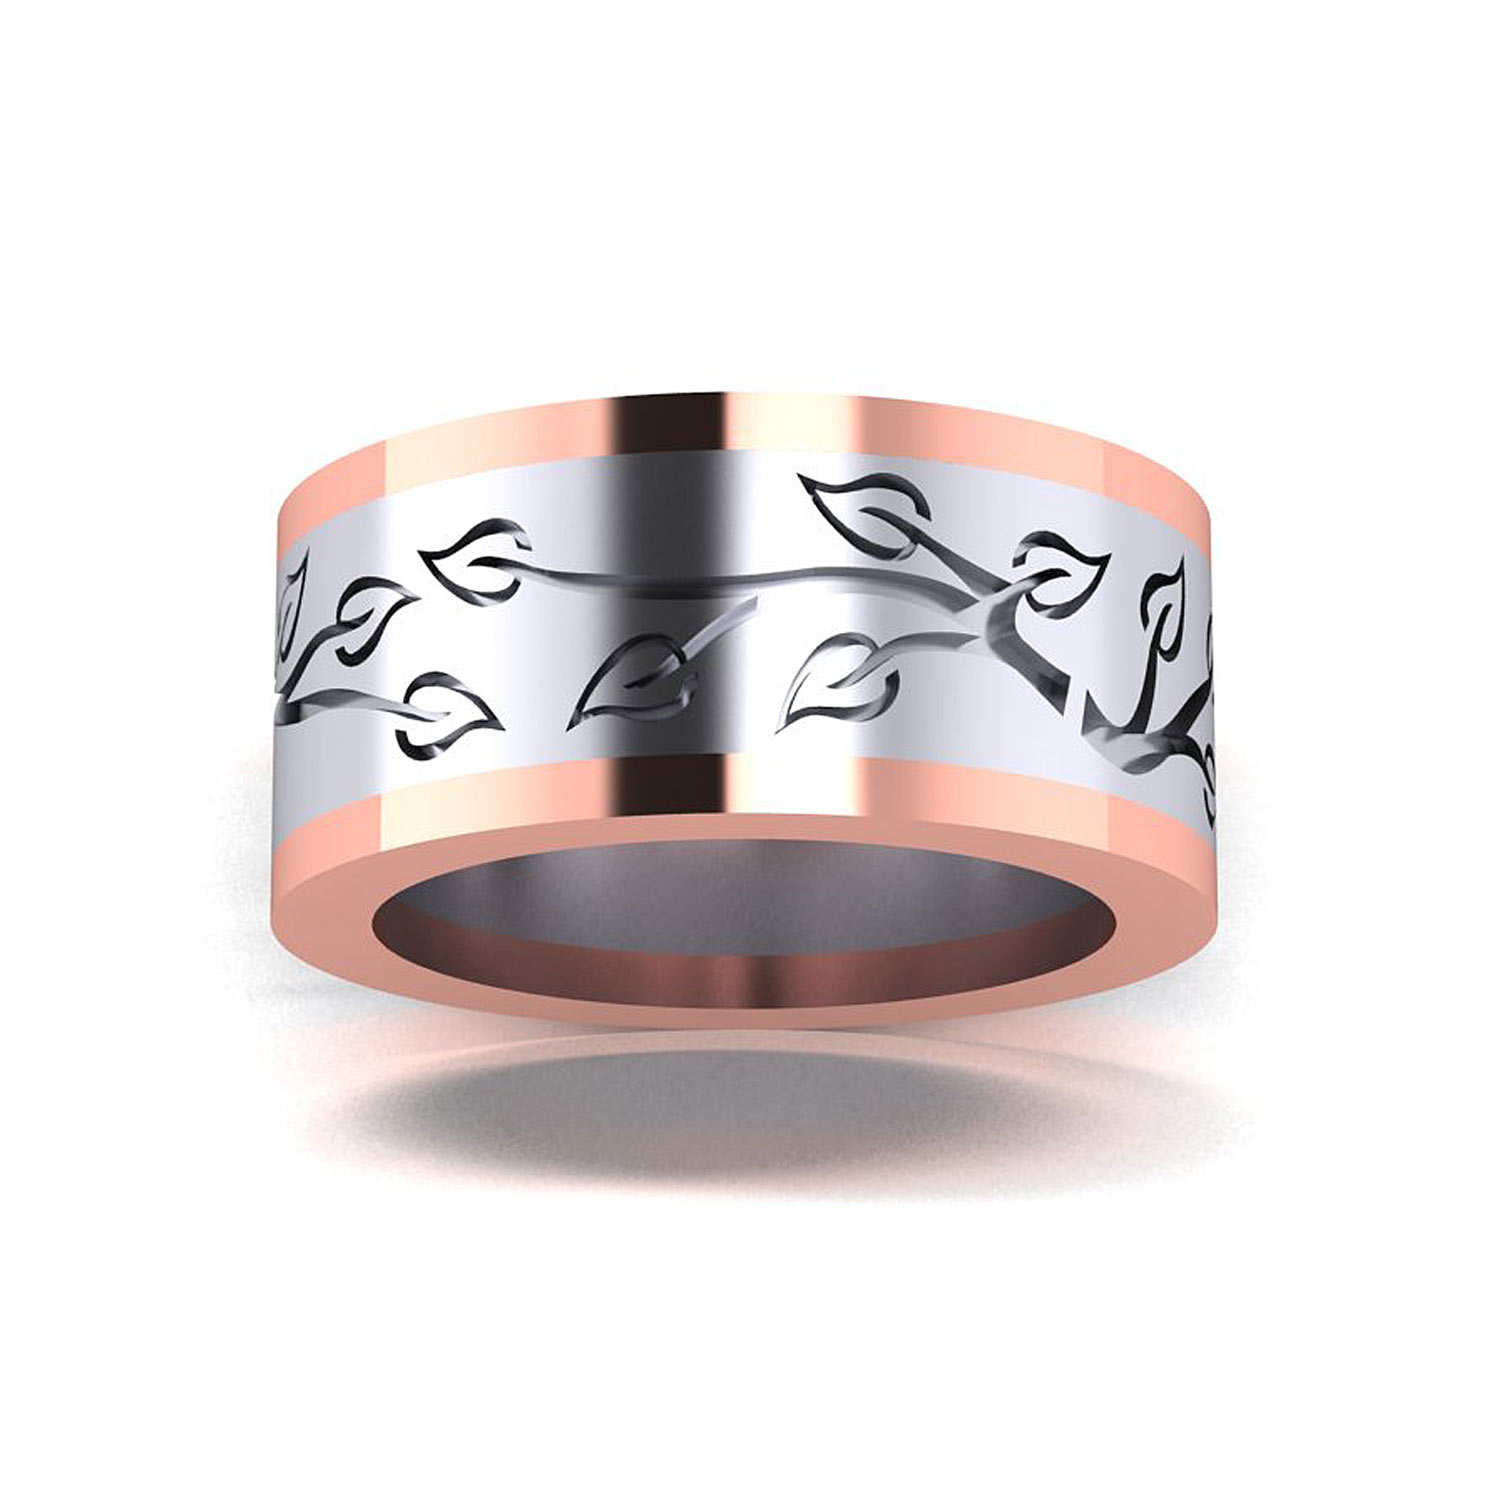 leaf-and-branch-nature-wedding-ring-two-tone-rose-and-white-gold,.jpg